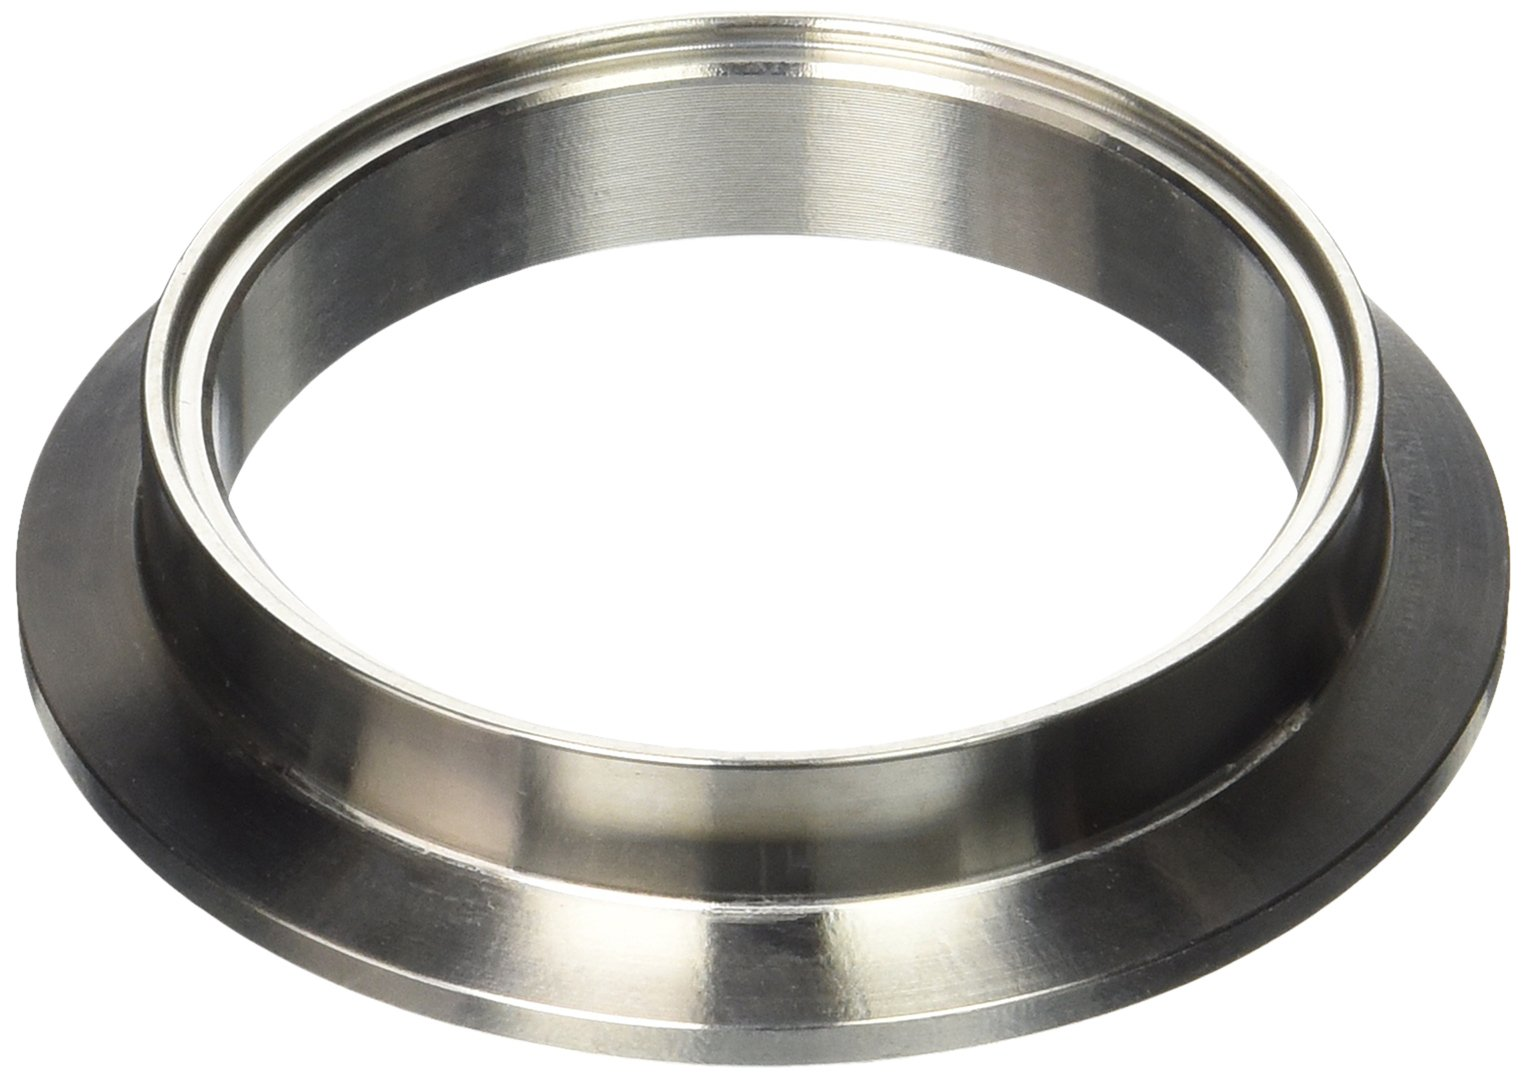 """OBX Stainless Steel V-Band Transition Adapter 2.5/"""" to 3.0/"""" Universal Application"""